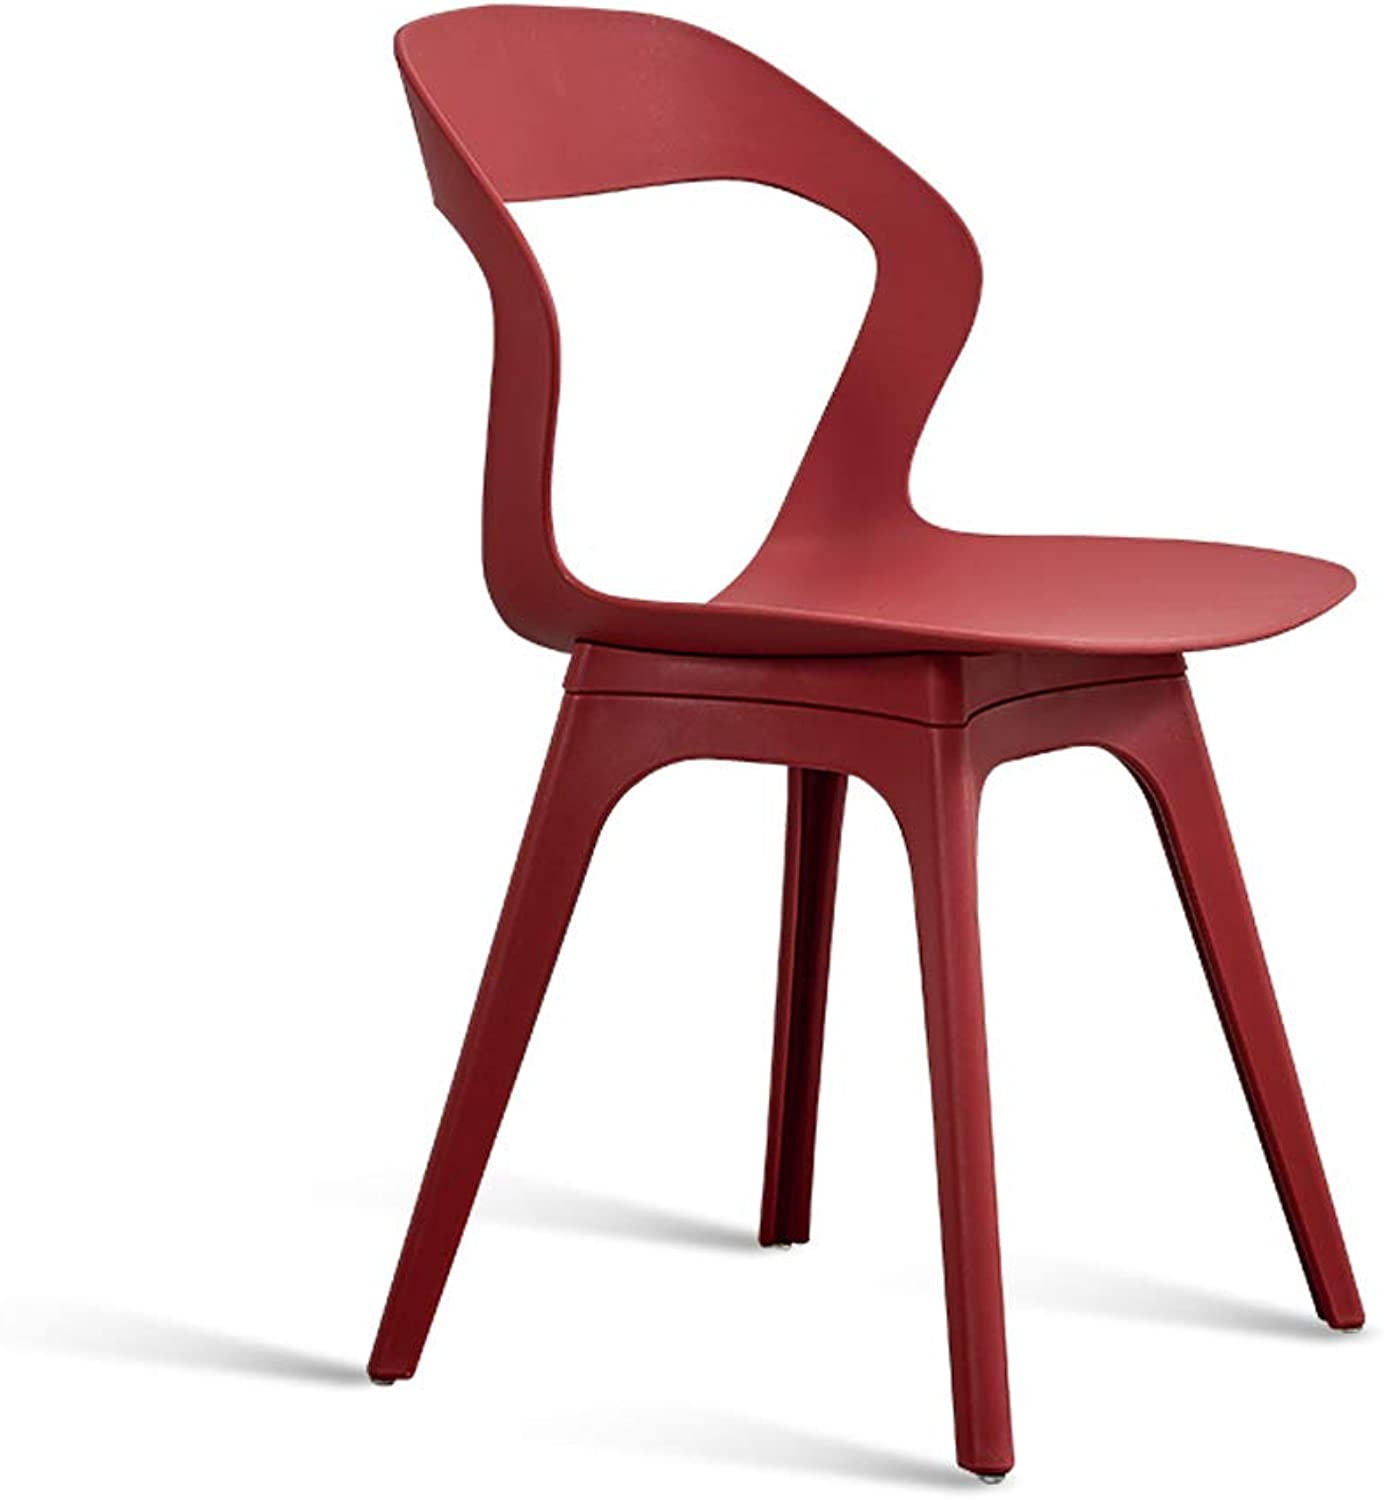 Plastic Dining Chair Leisure Chair Simple Backrest Stool Living Room Chair Desk Chair-L44W44.5H80CM (color   RED)